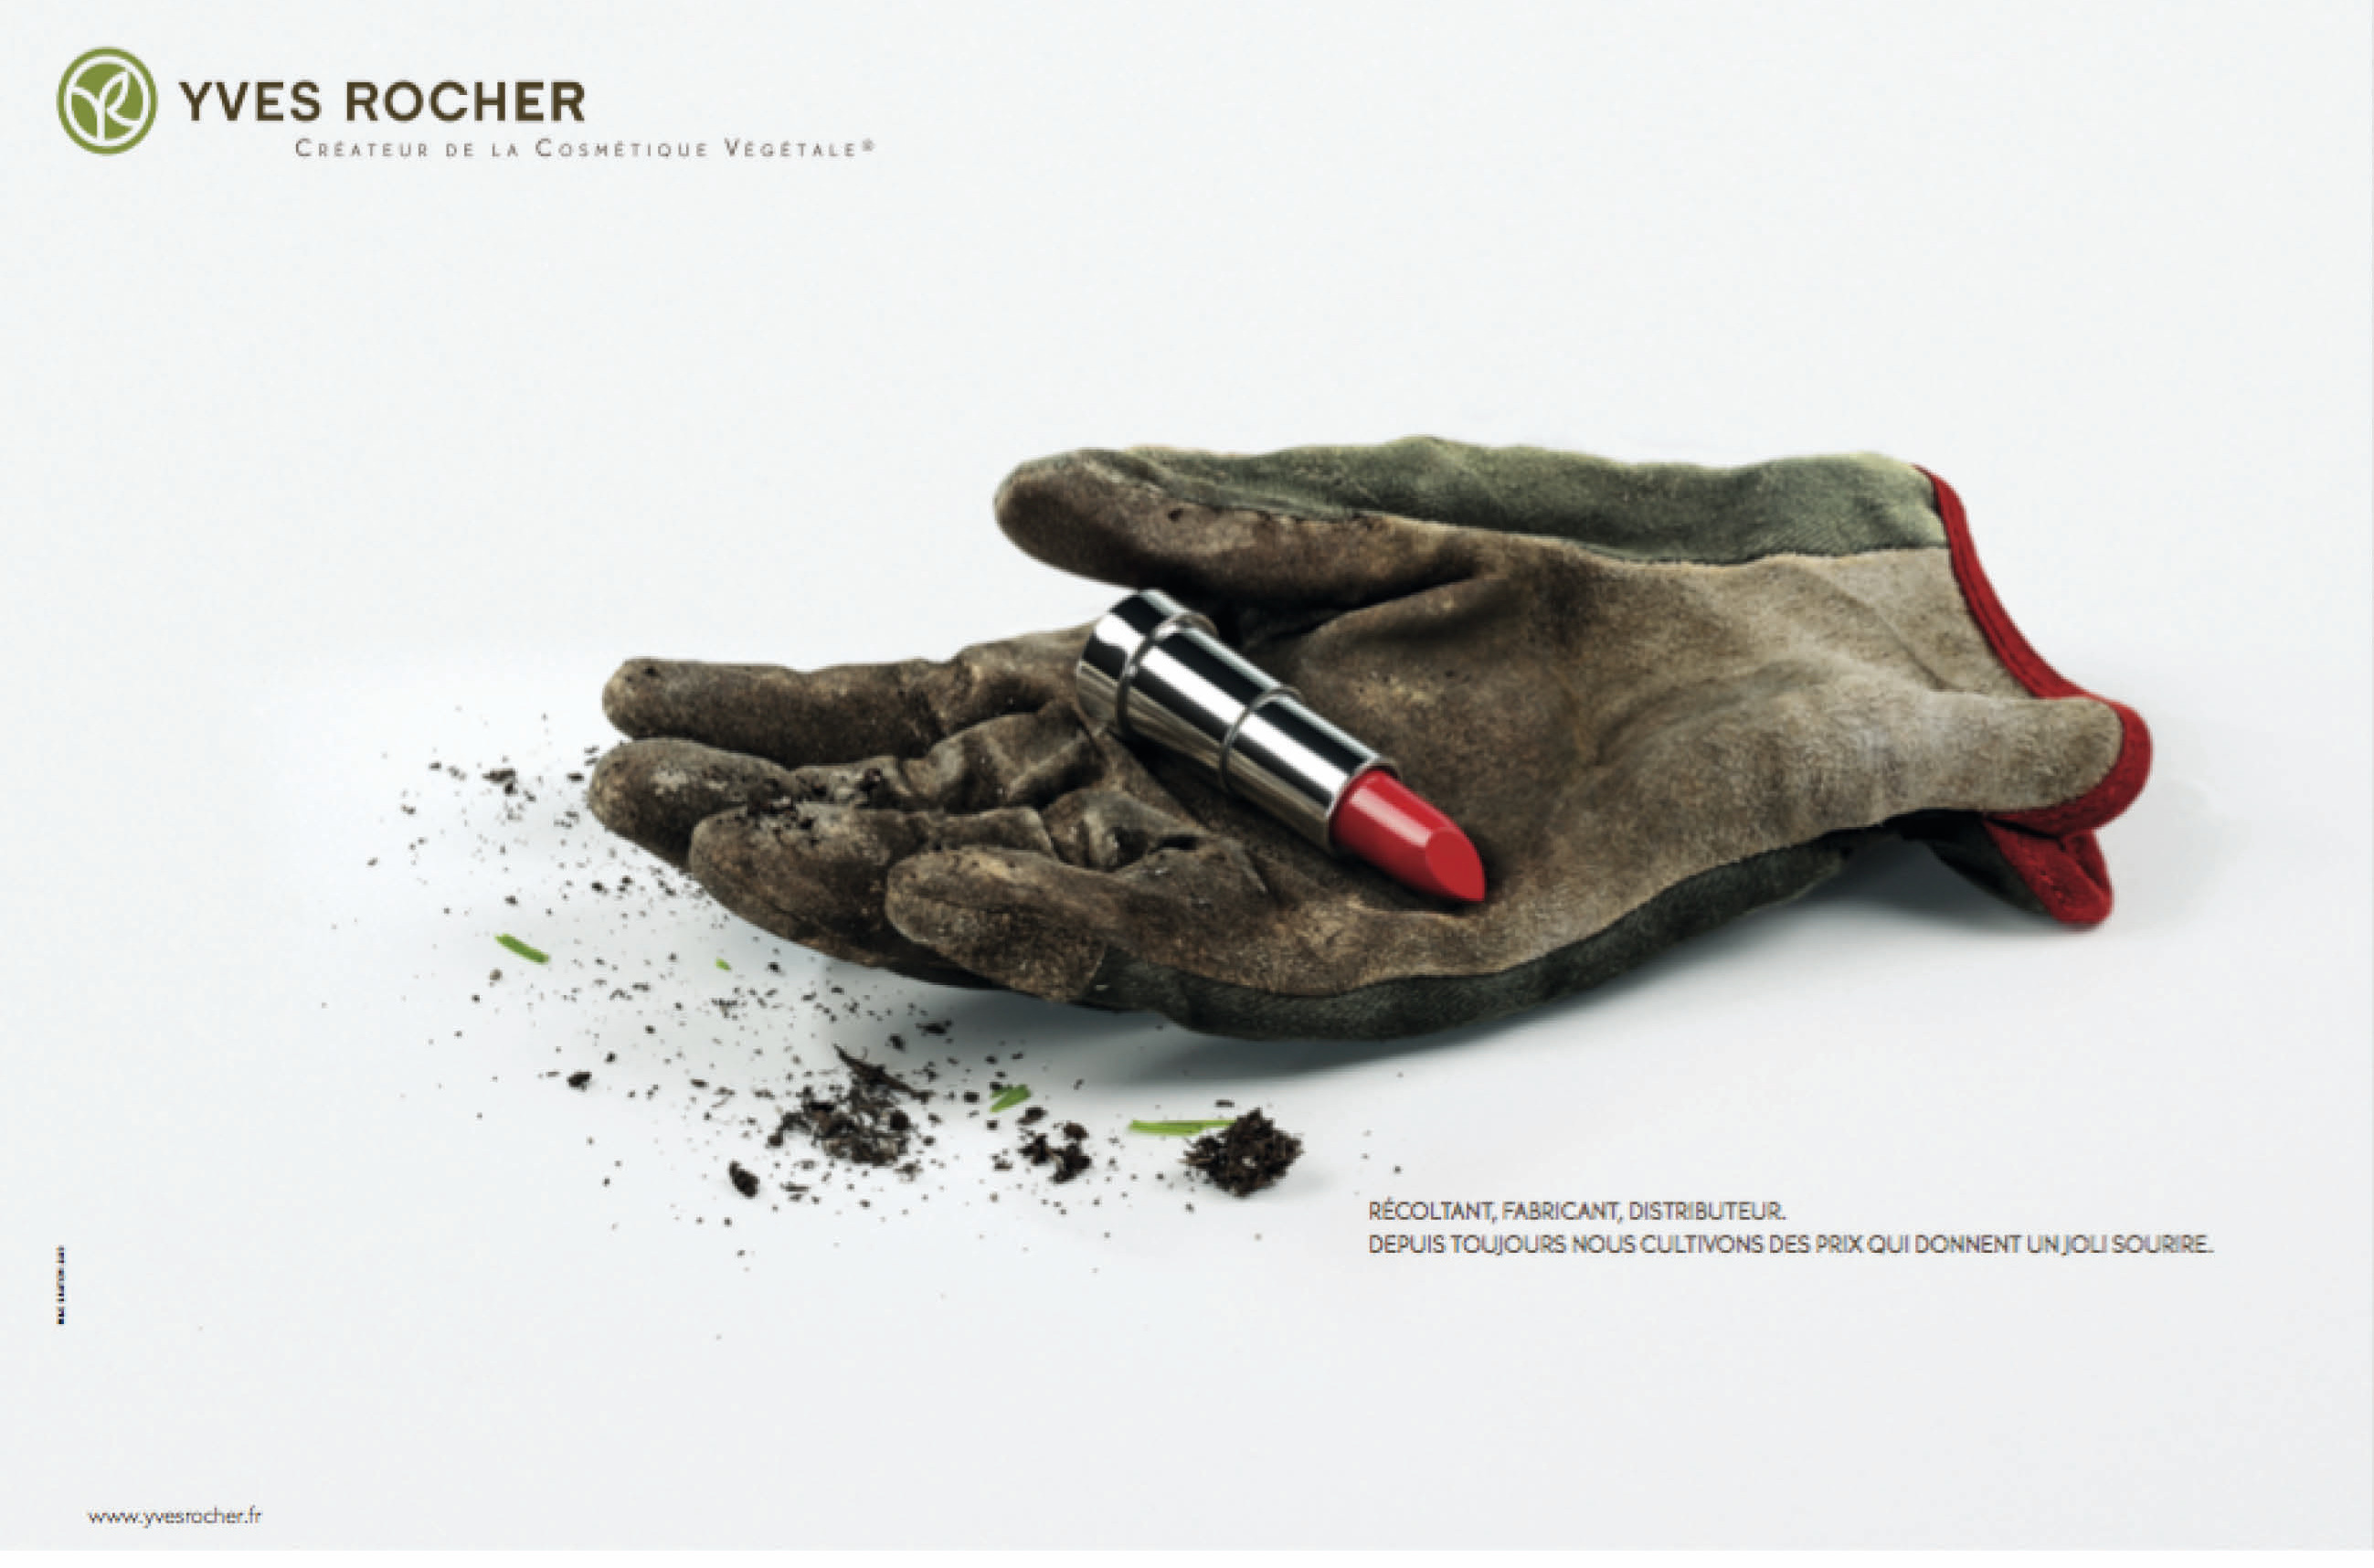 Campagne marque // Yves Rocher